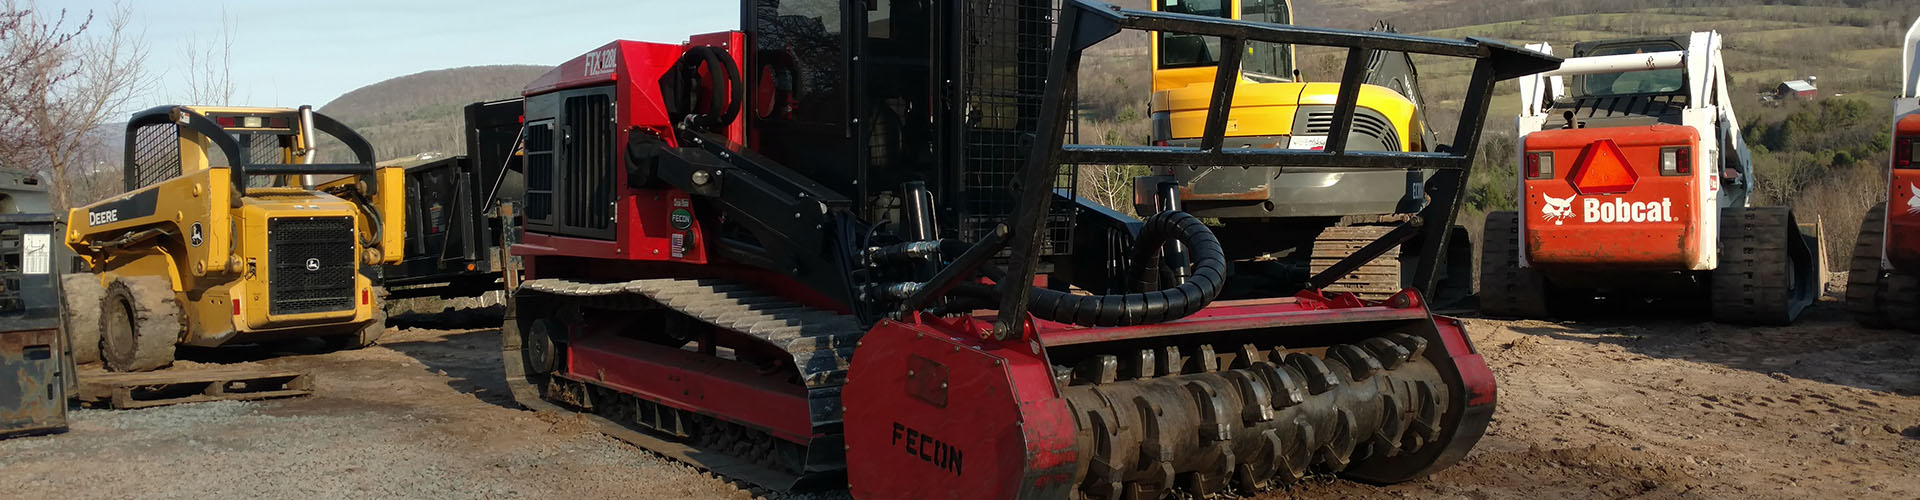 Used Fecon Forestry Equipment